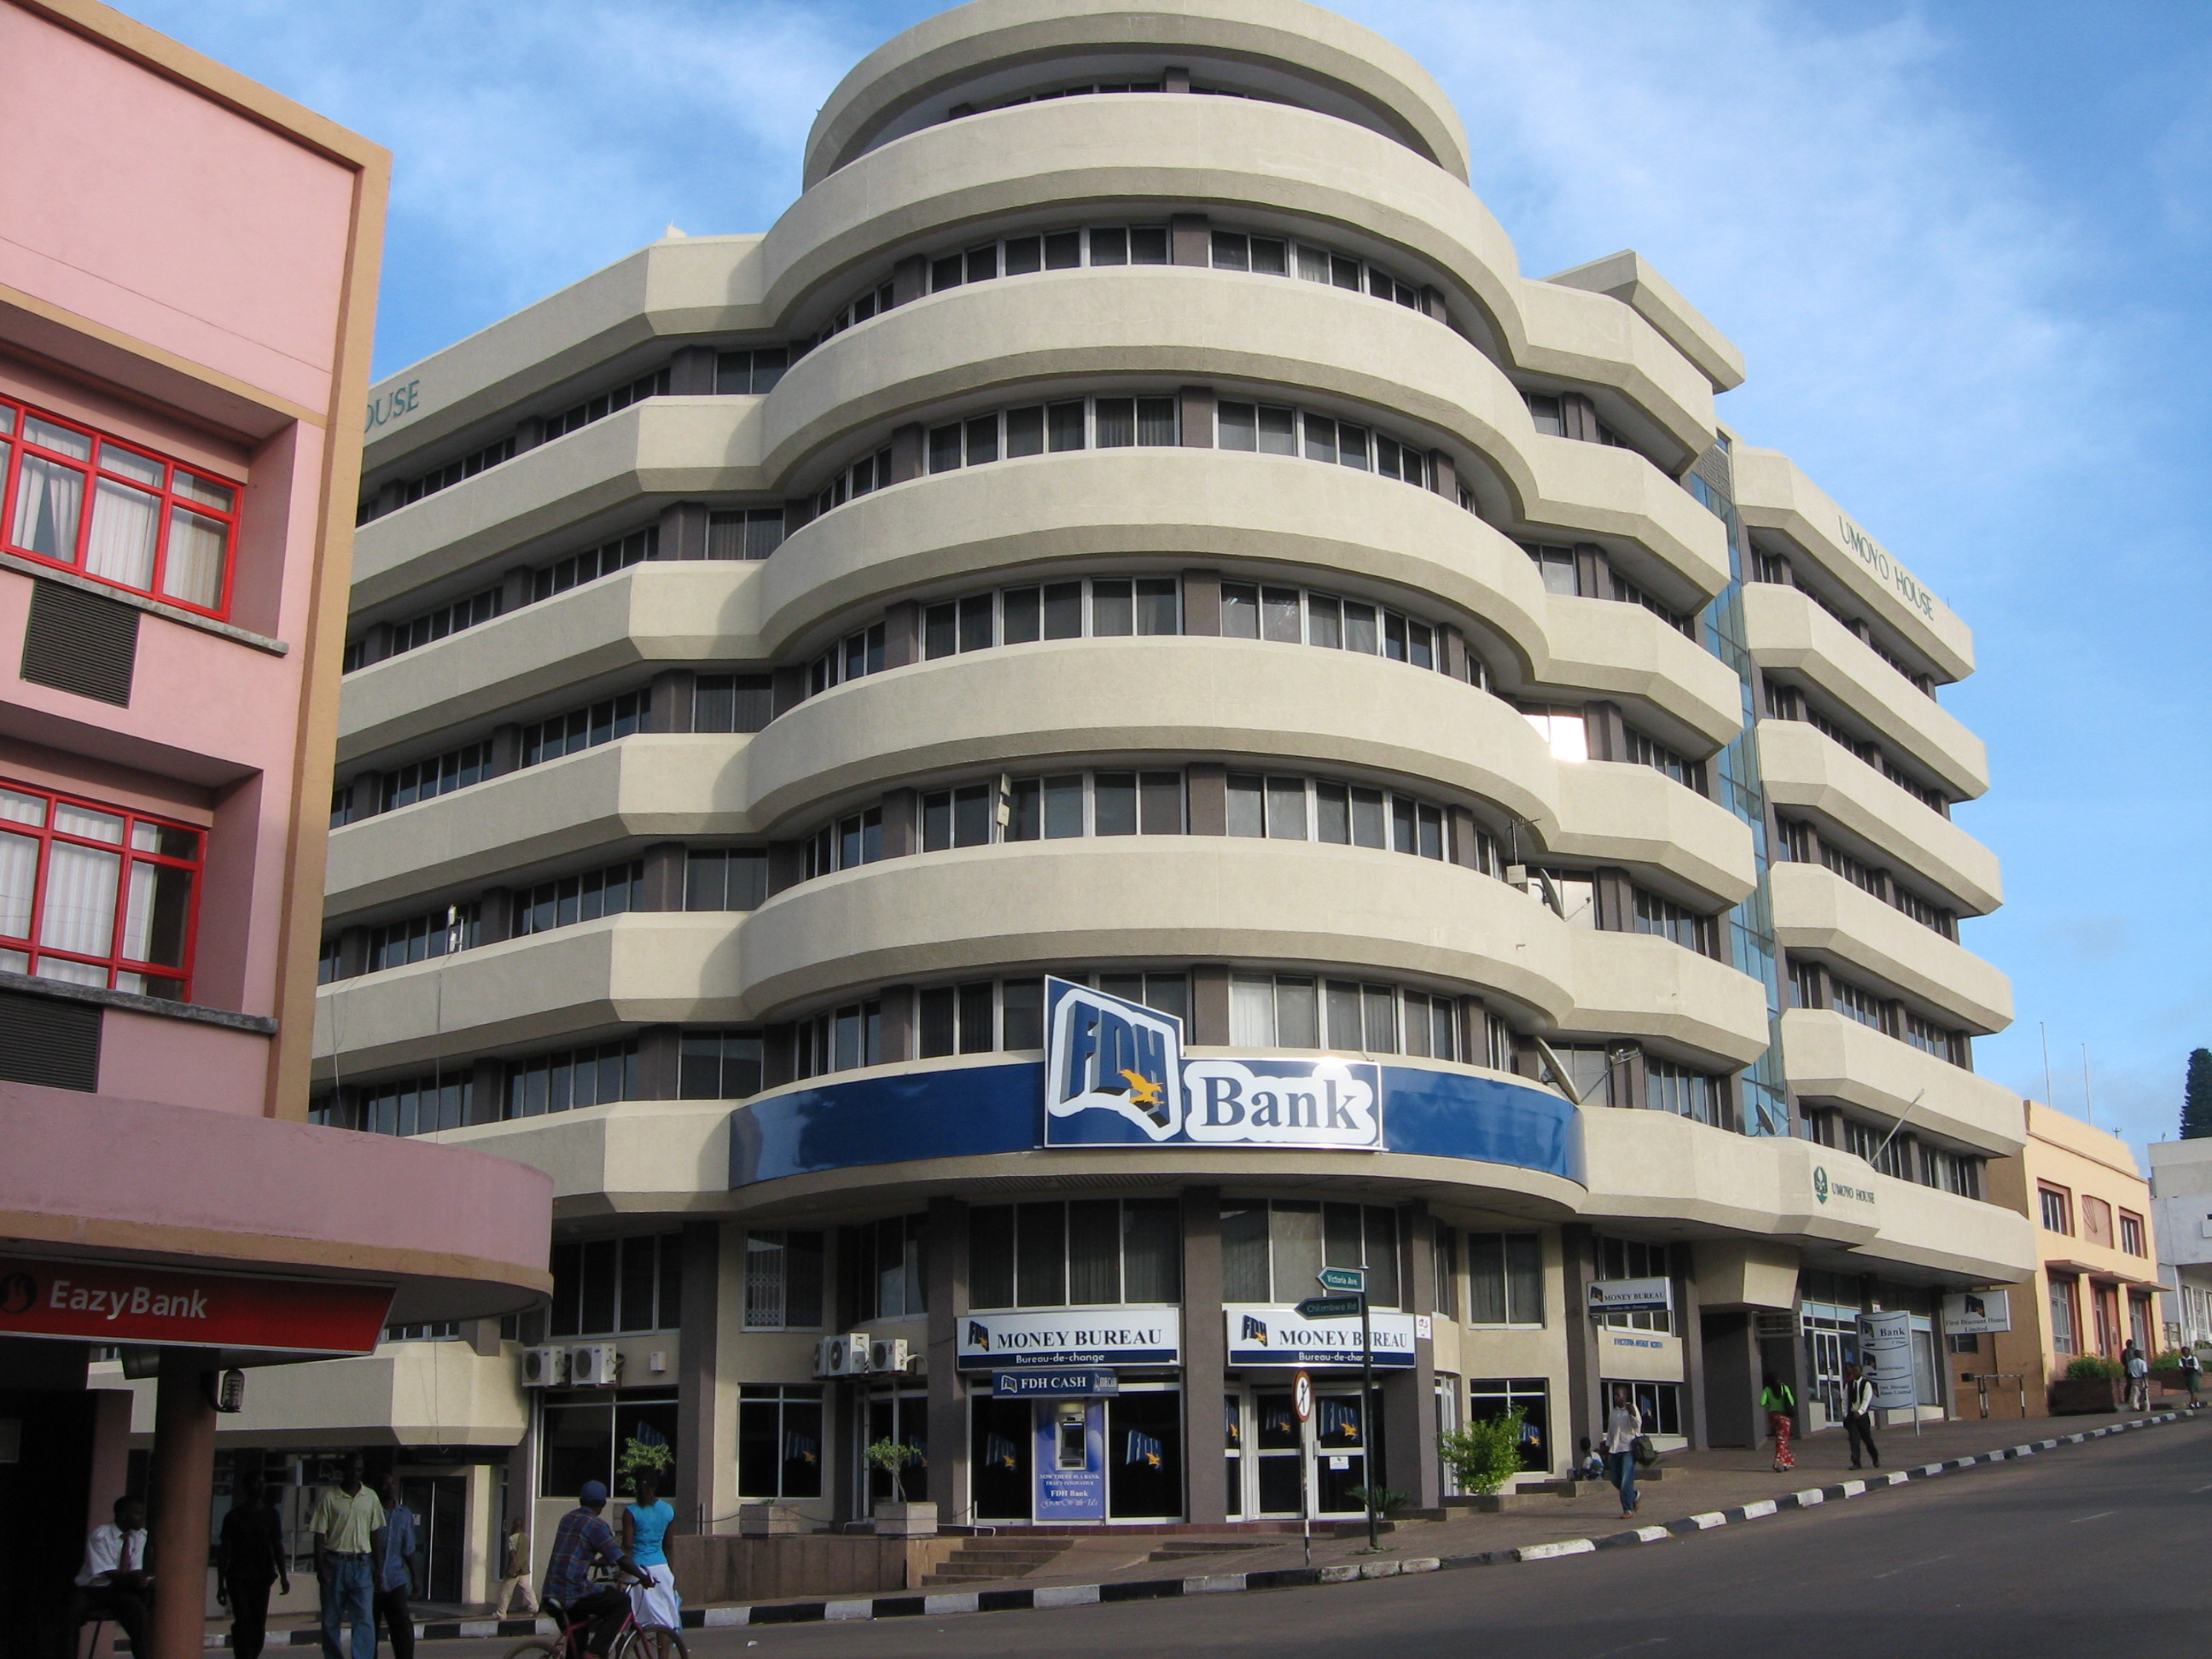 Emirates Agent Office In Blantyre Malawi 1